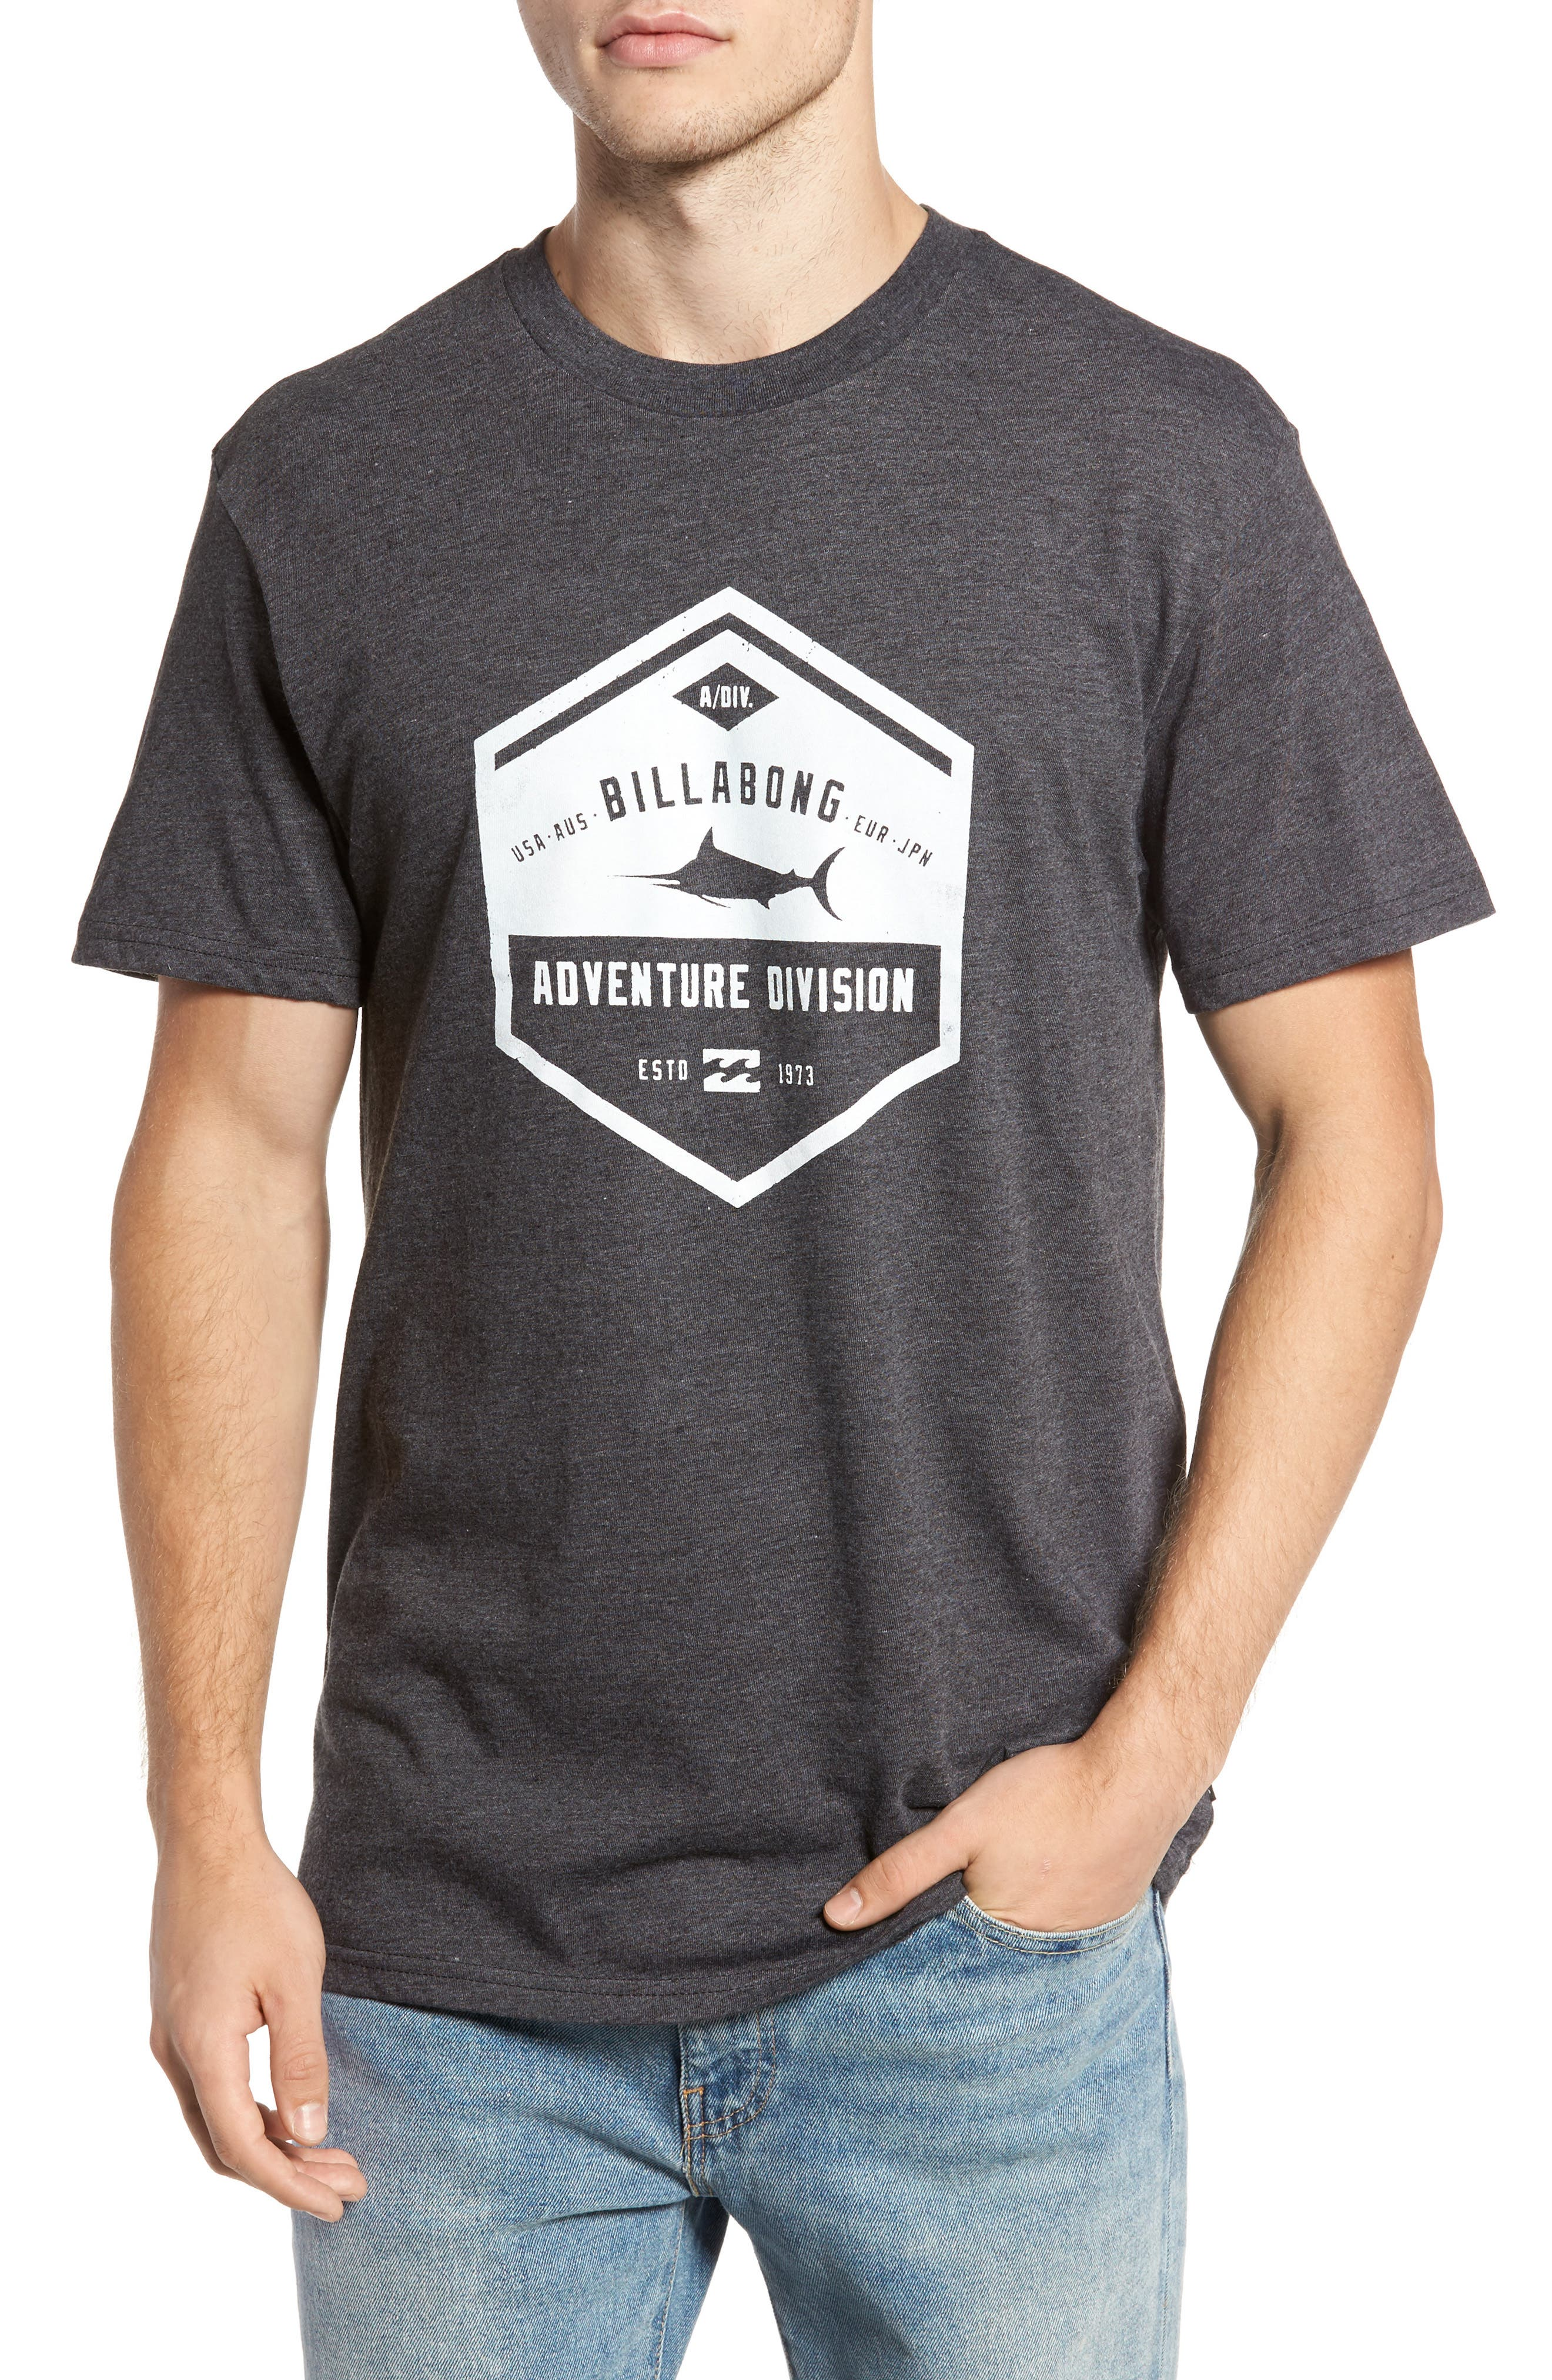 Alternate Image 1 Selected - Billabong Trade Winds Graphic T-Shirt